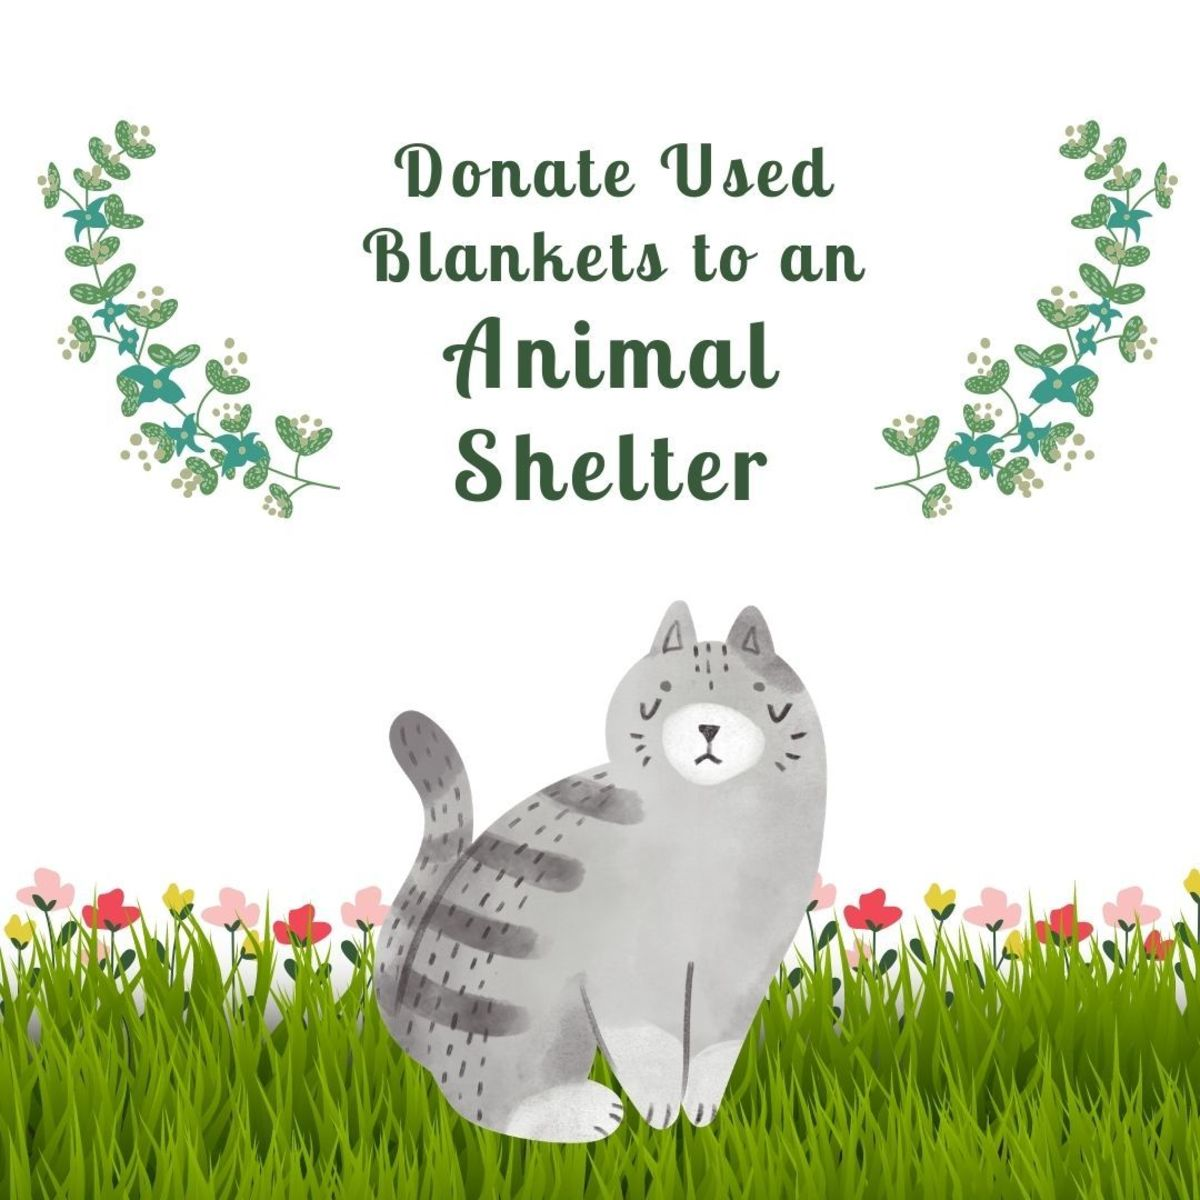 Animal shelters are always looking for assistance—donating your old blankets and towels is an easy way to help!